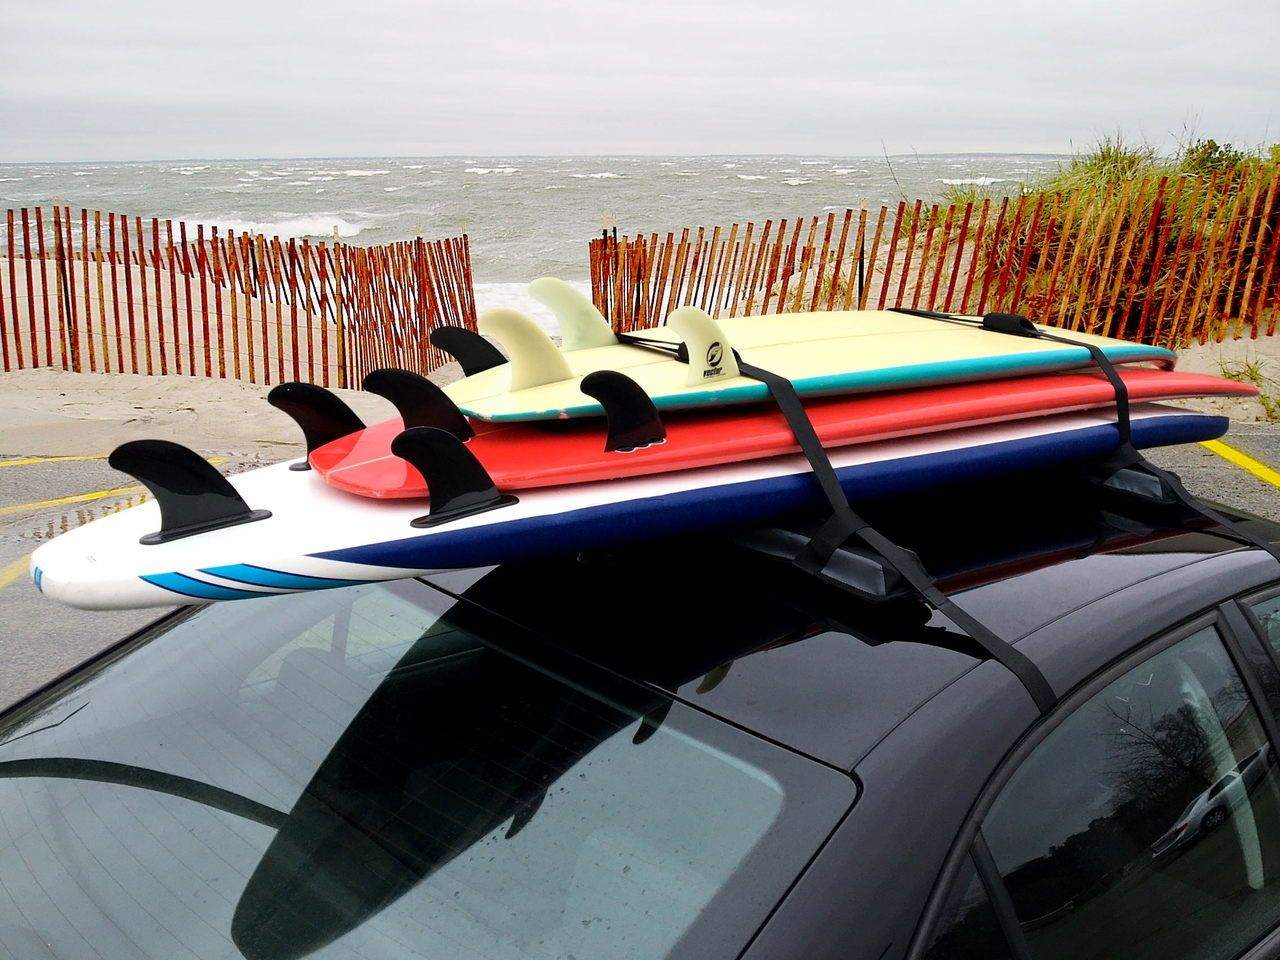 Sup Surfboard Car Rack Removable Universal Storeyourboard Com Surfboard Car Rack Car Racks Car